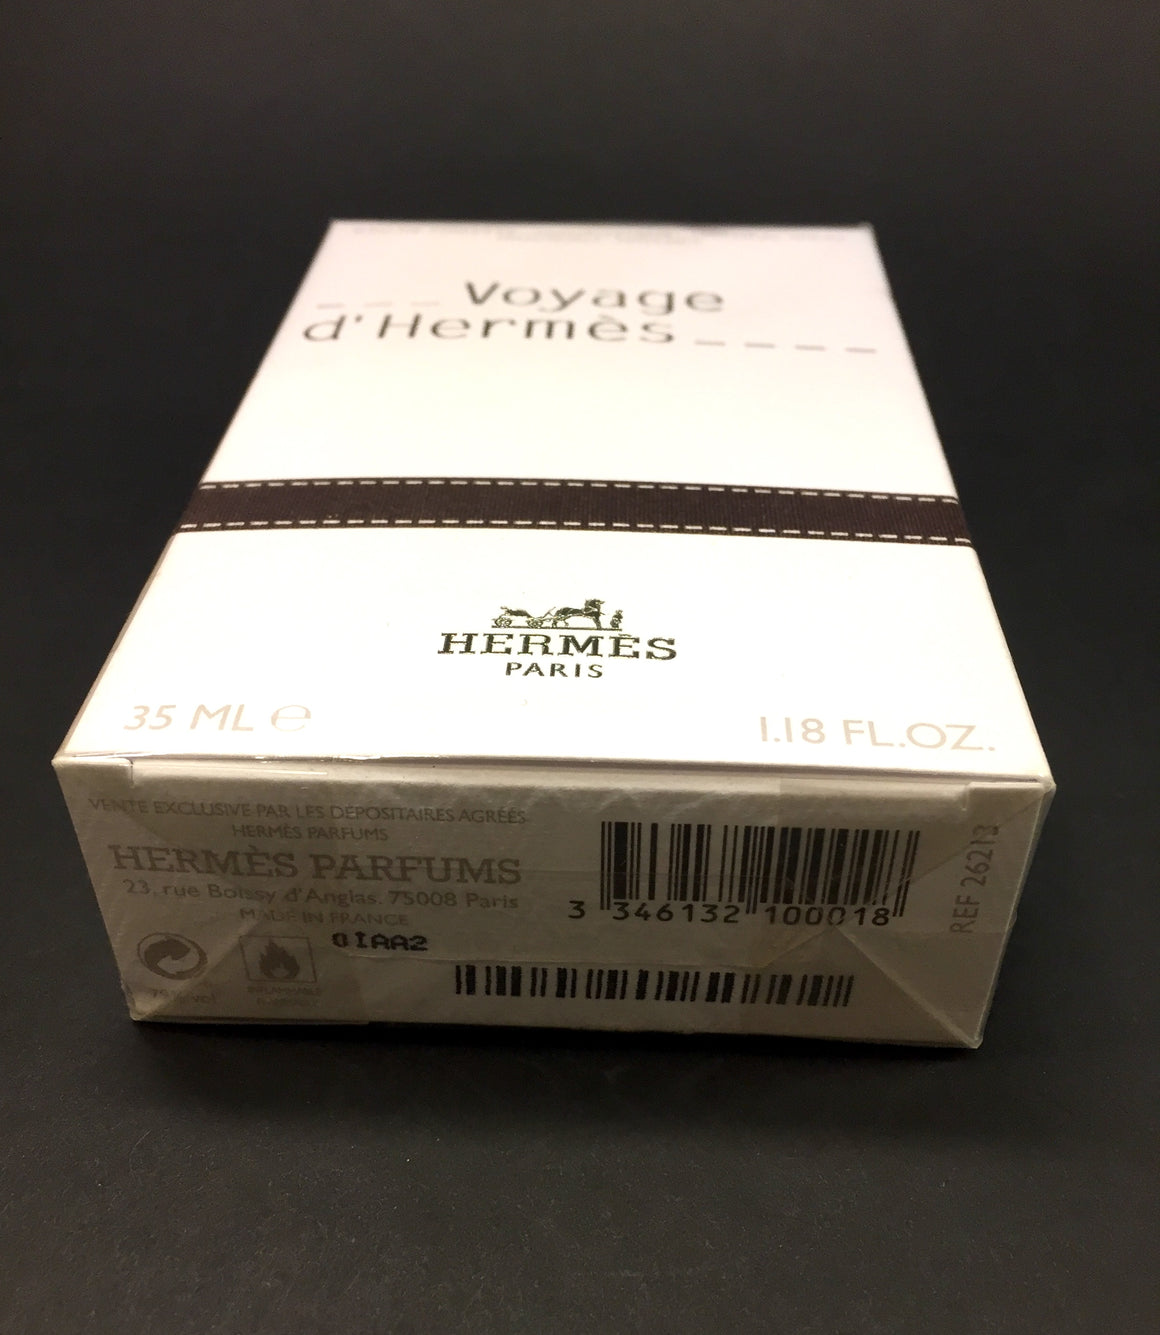 New HERMES 'VOYAGE D'HERMES' Refillable Eau de Toilette Spray Sz1.18 fl.oz.